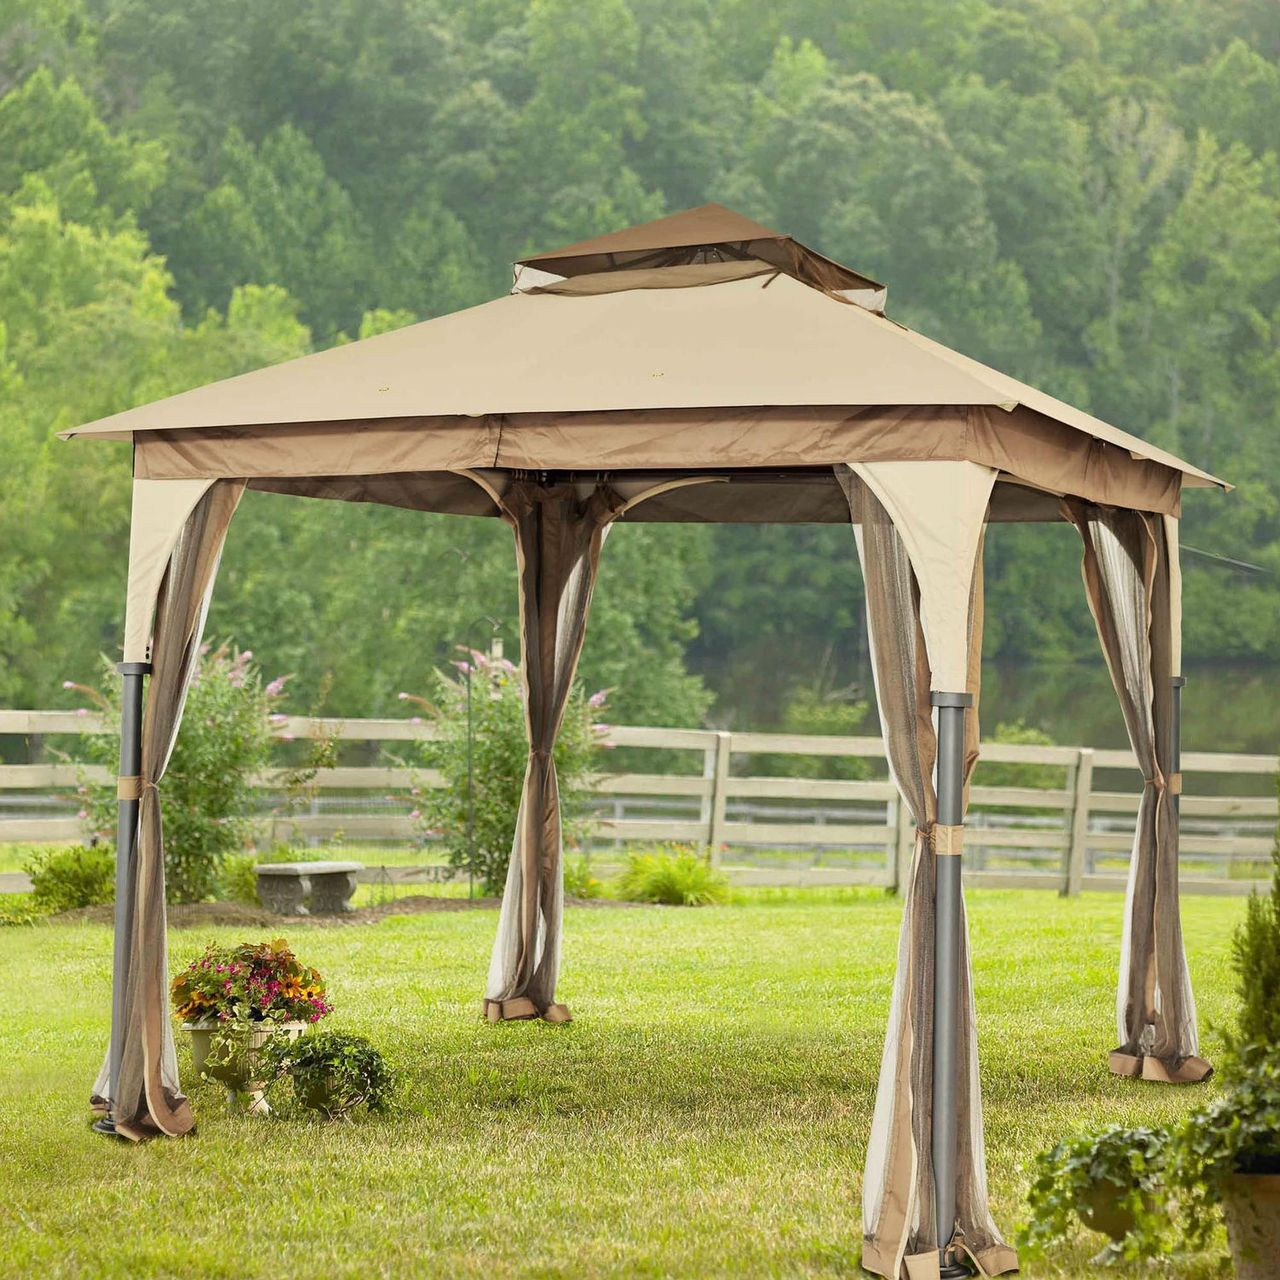 8 ft x 8 ft steel frame gazebo wbeige brown canopy and